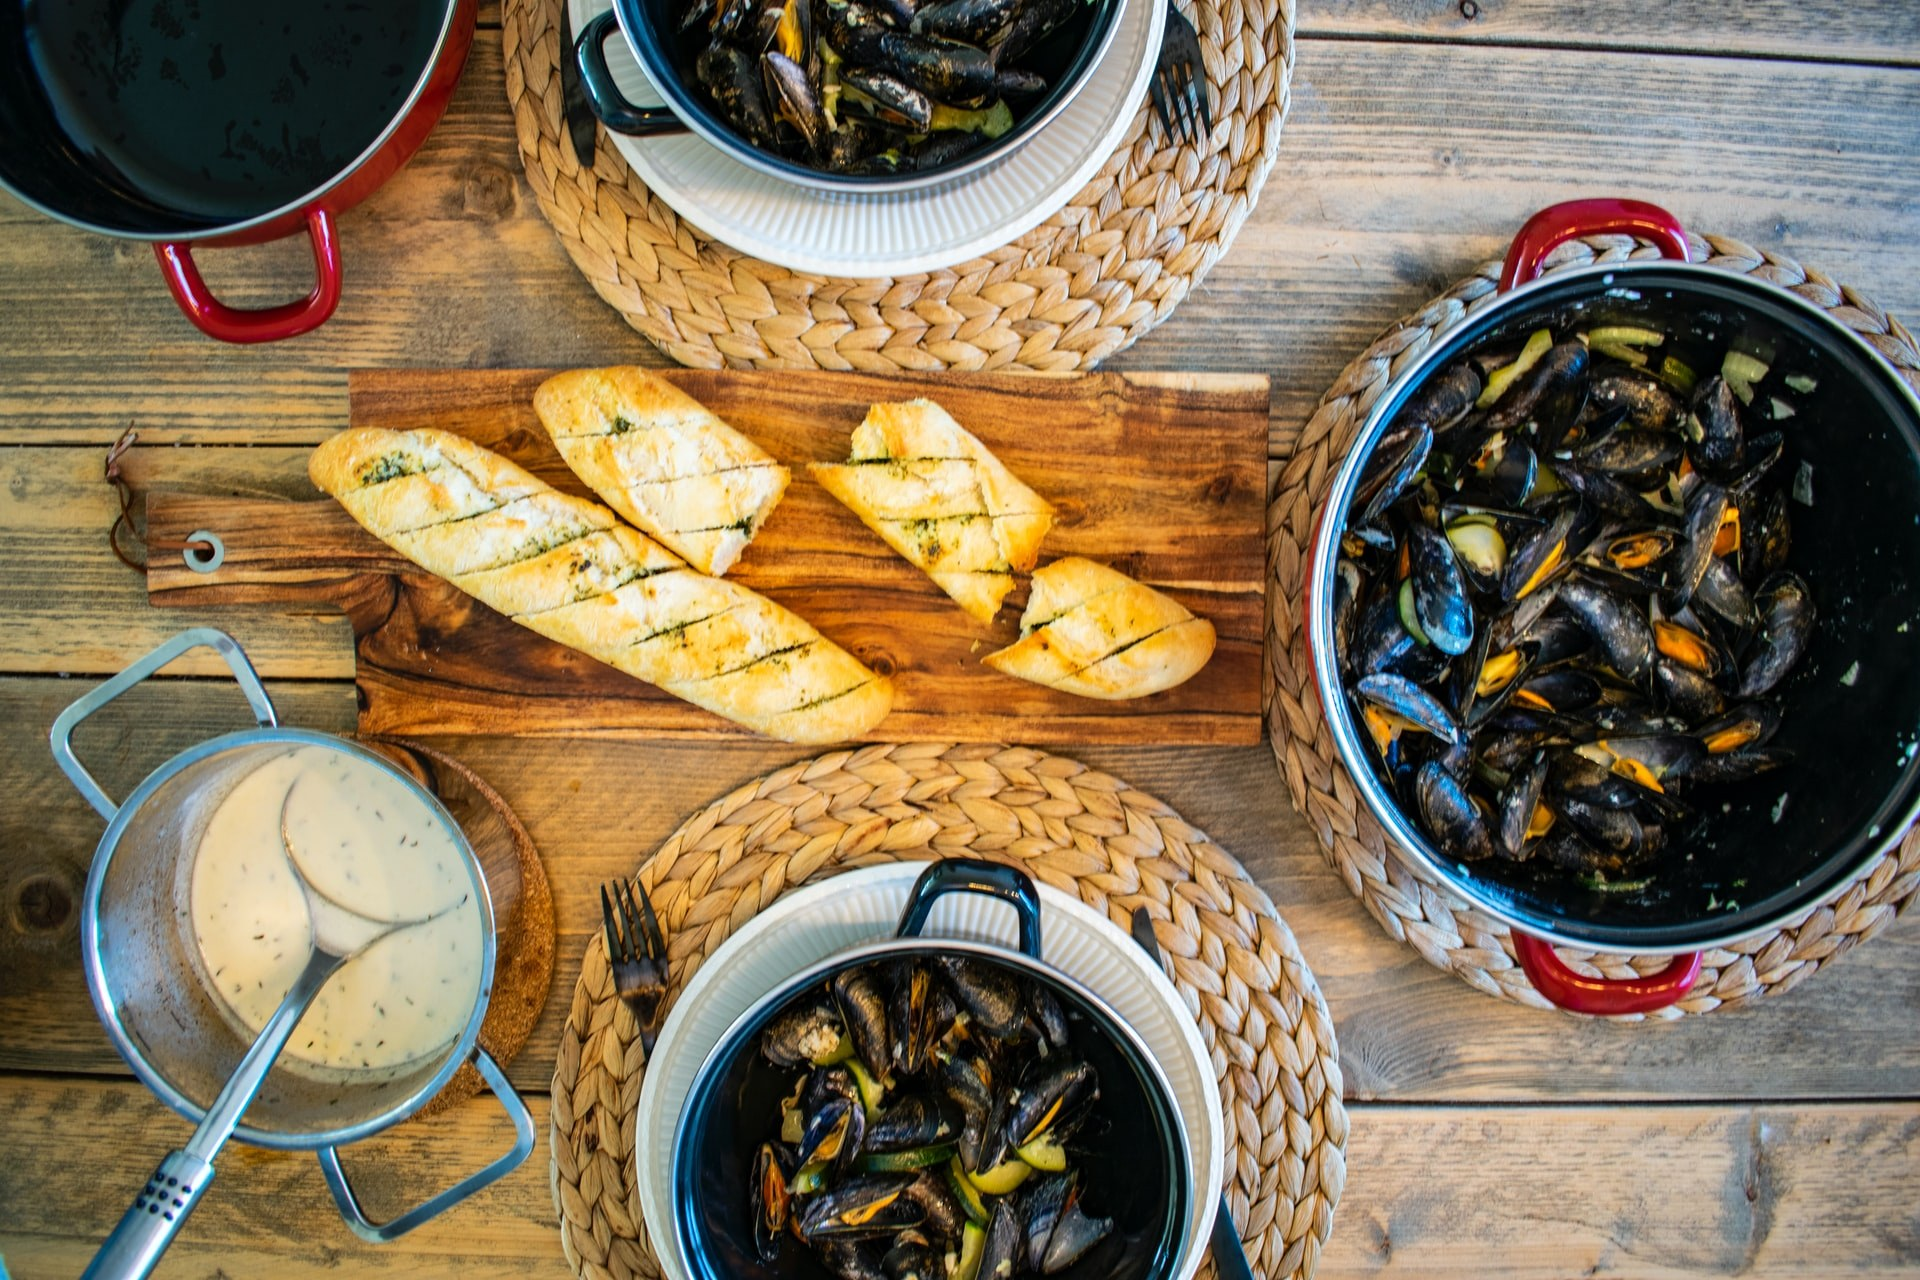 Don't Miss the Mussels at Hopleaf Bar and Restaurant